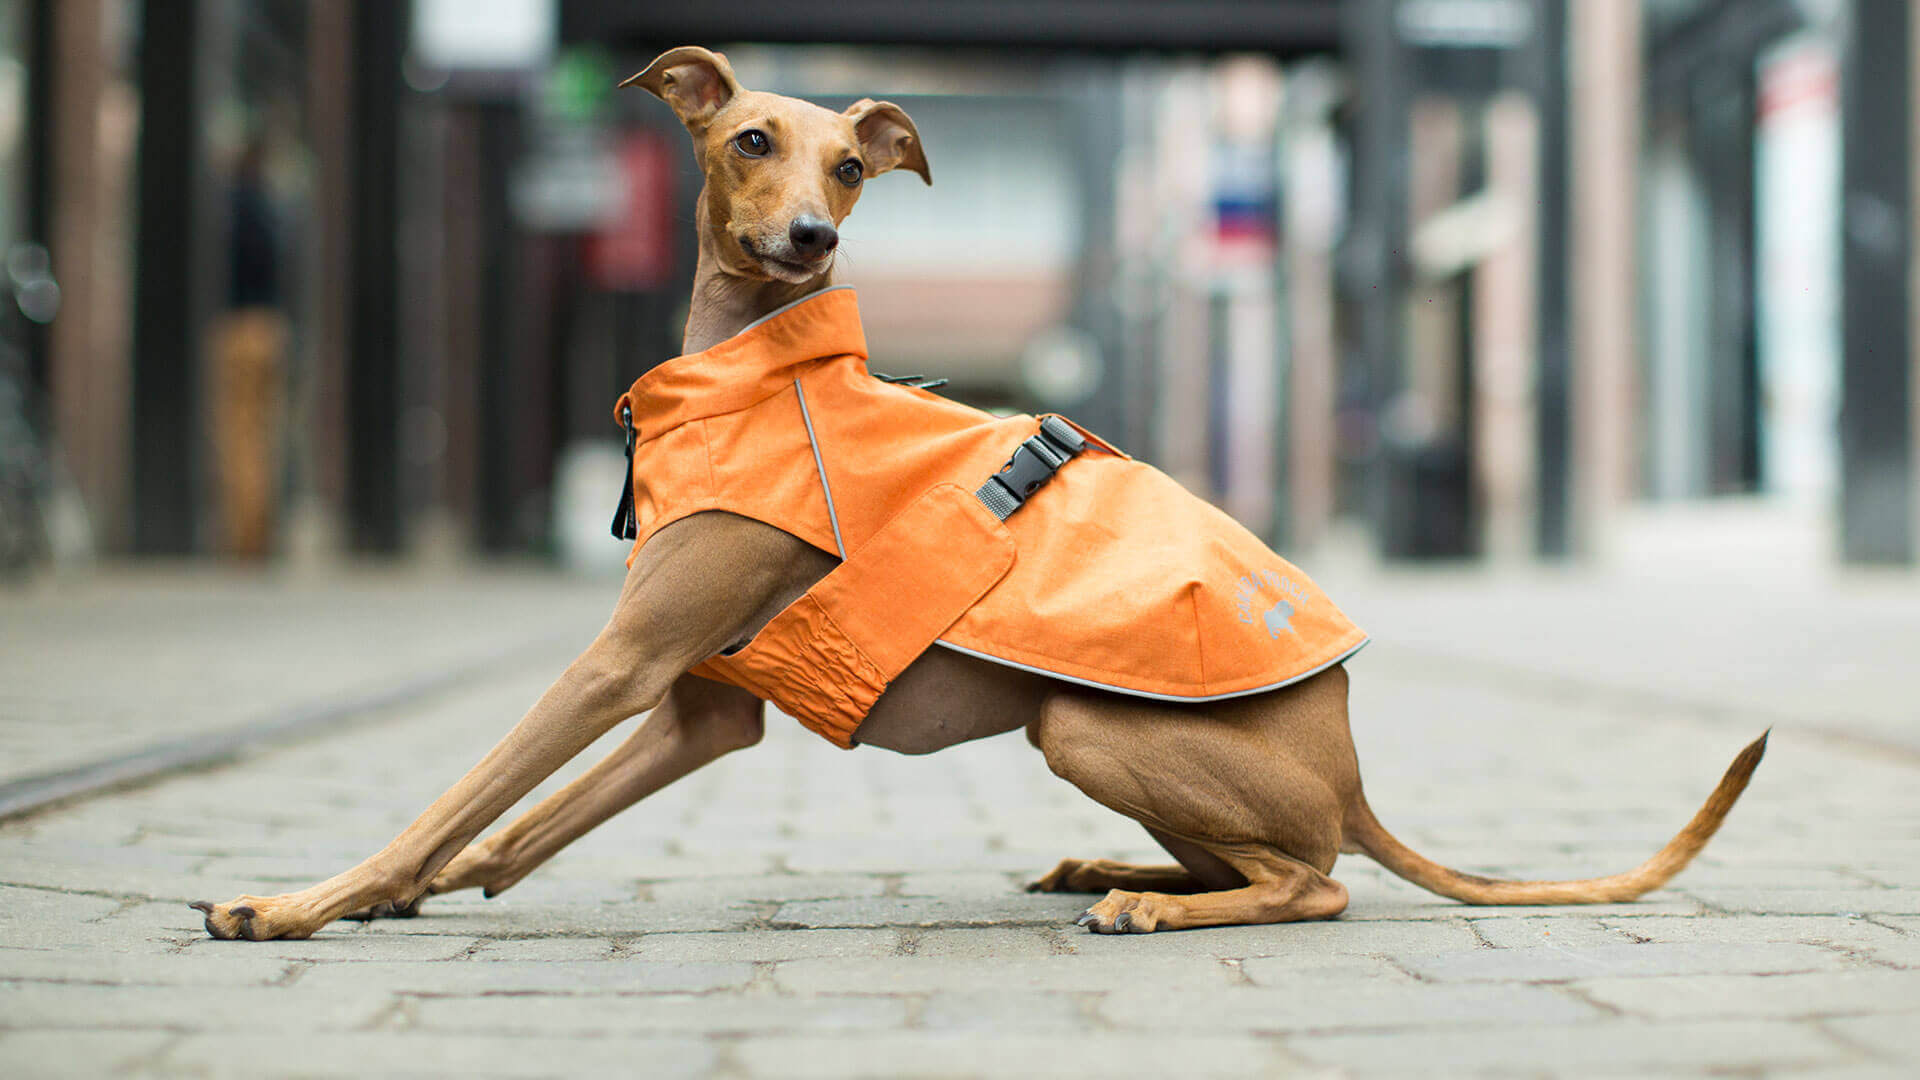 The Expedition Raincoat